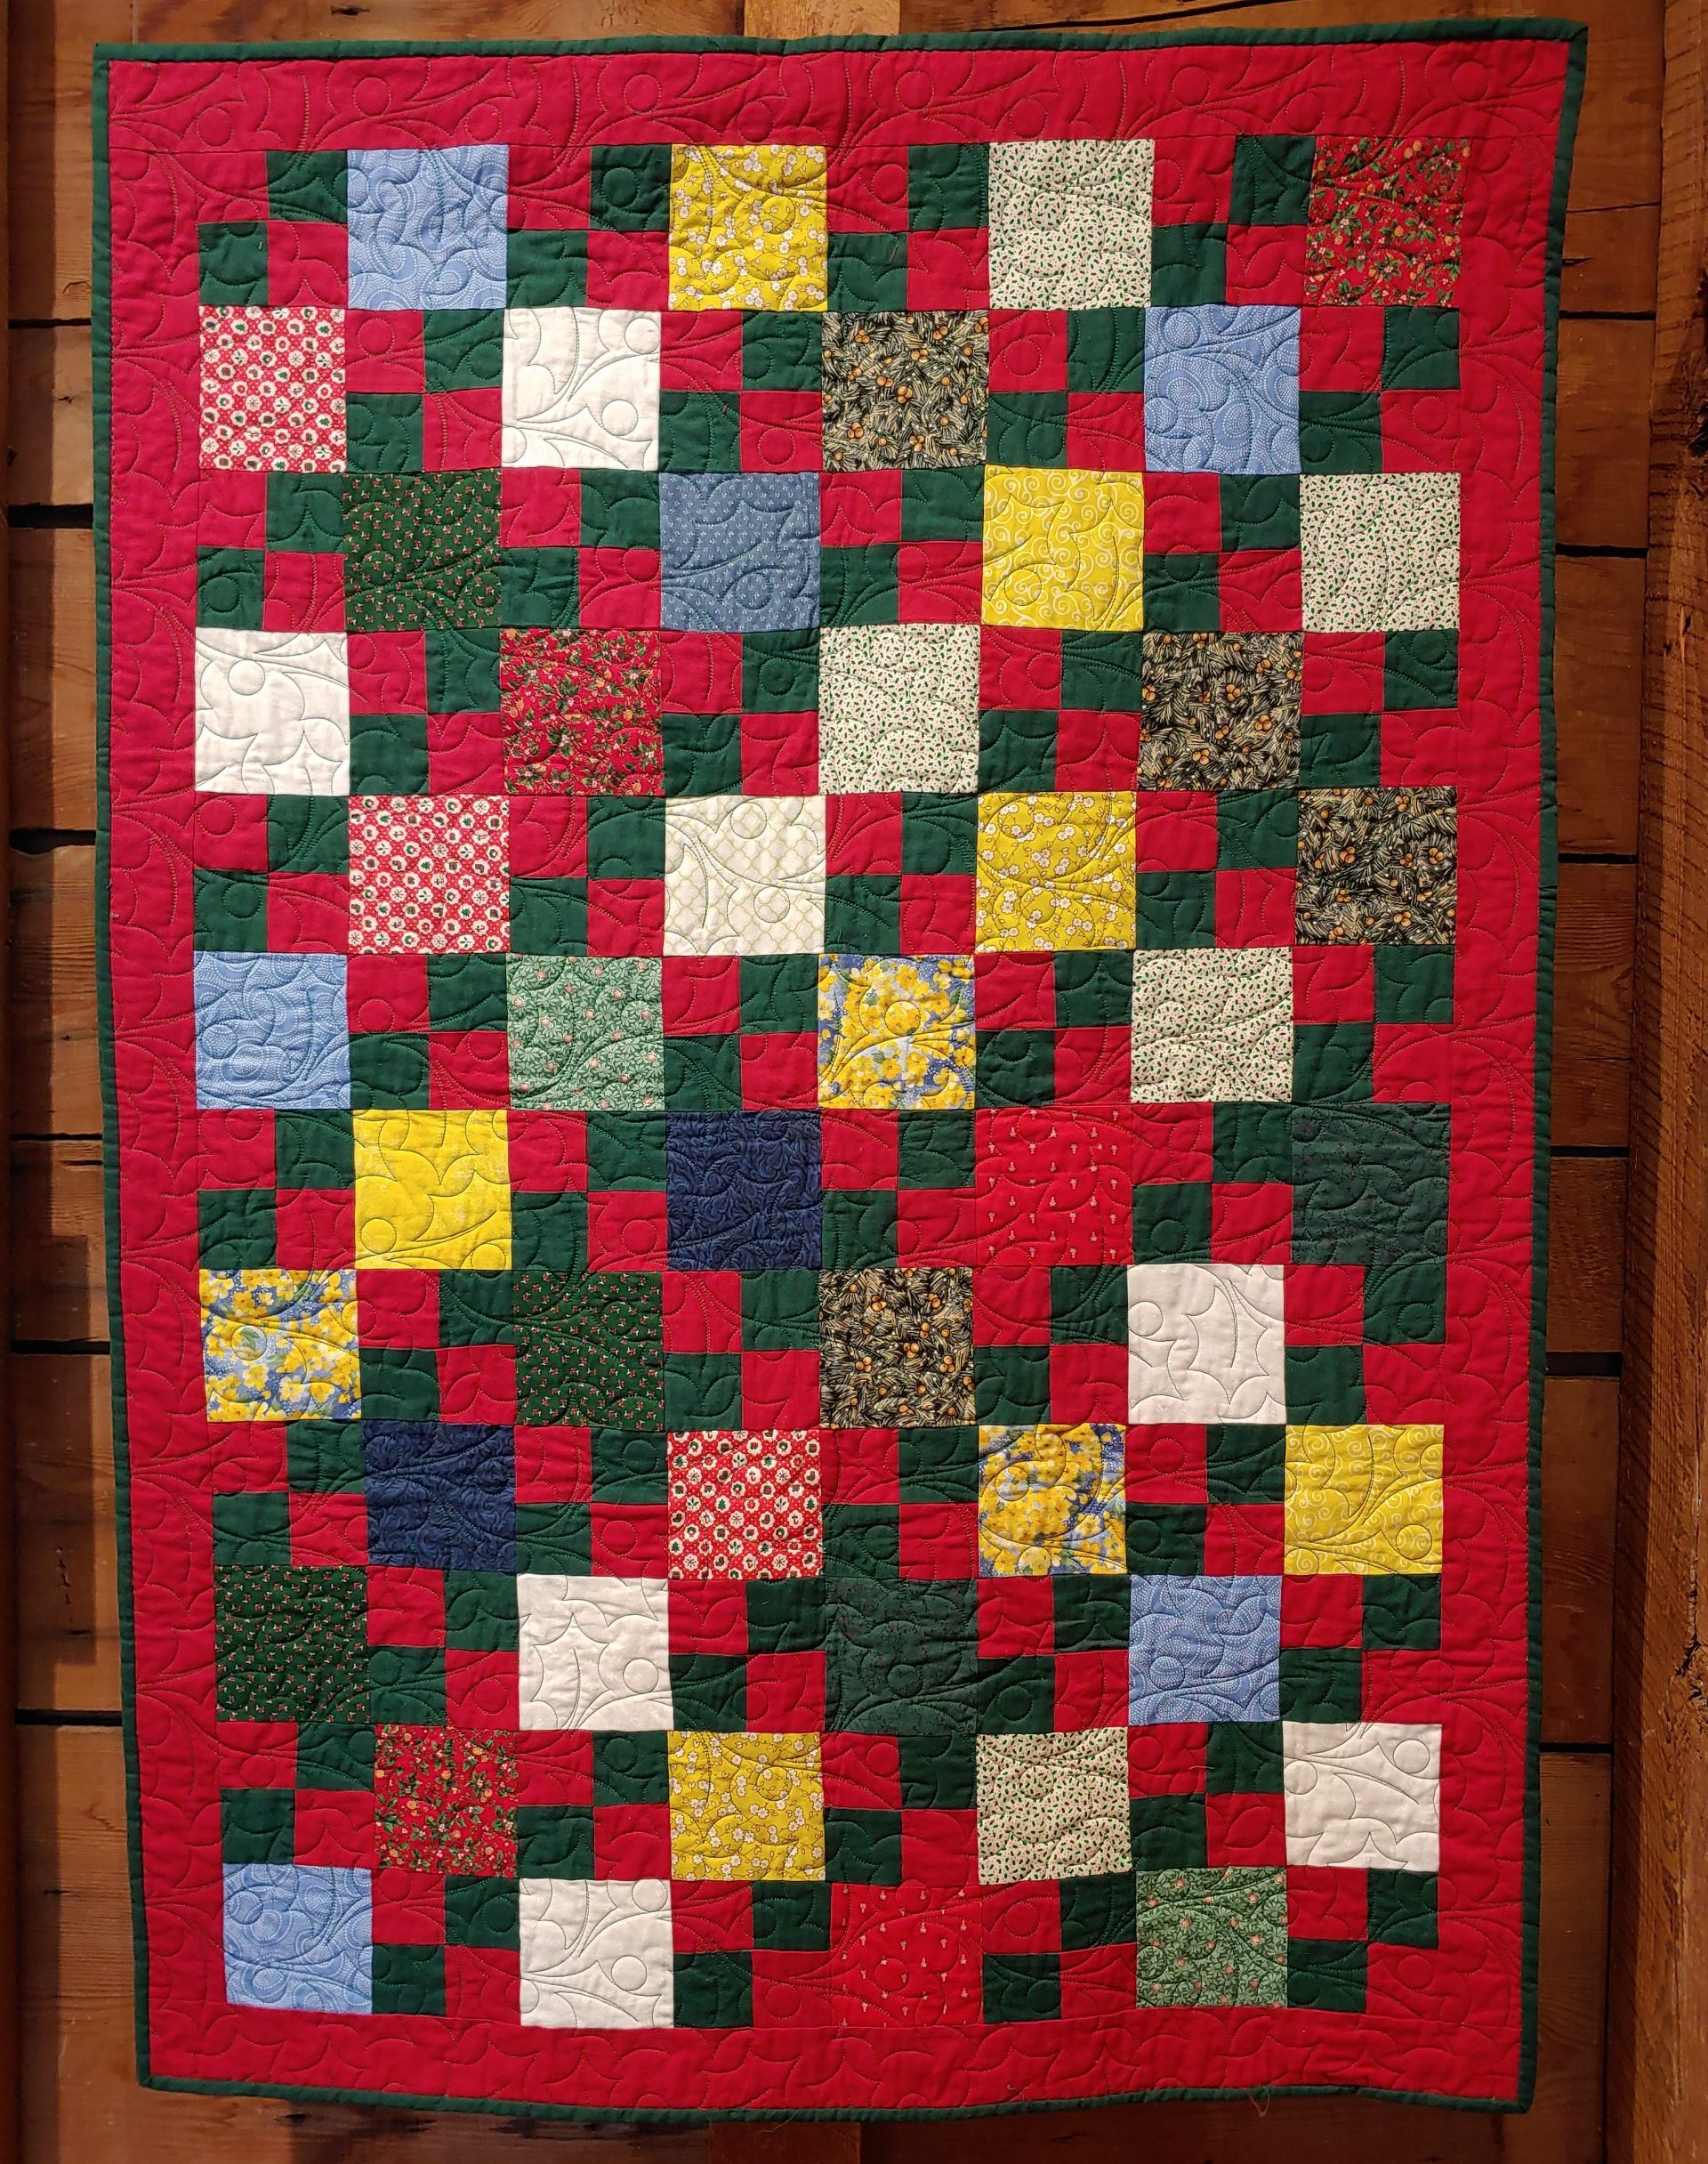 #24 - The Christmas Quilt